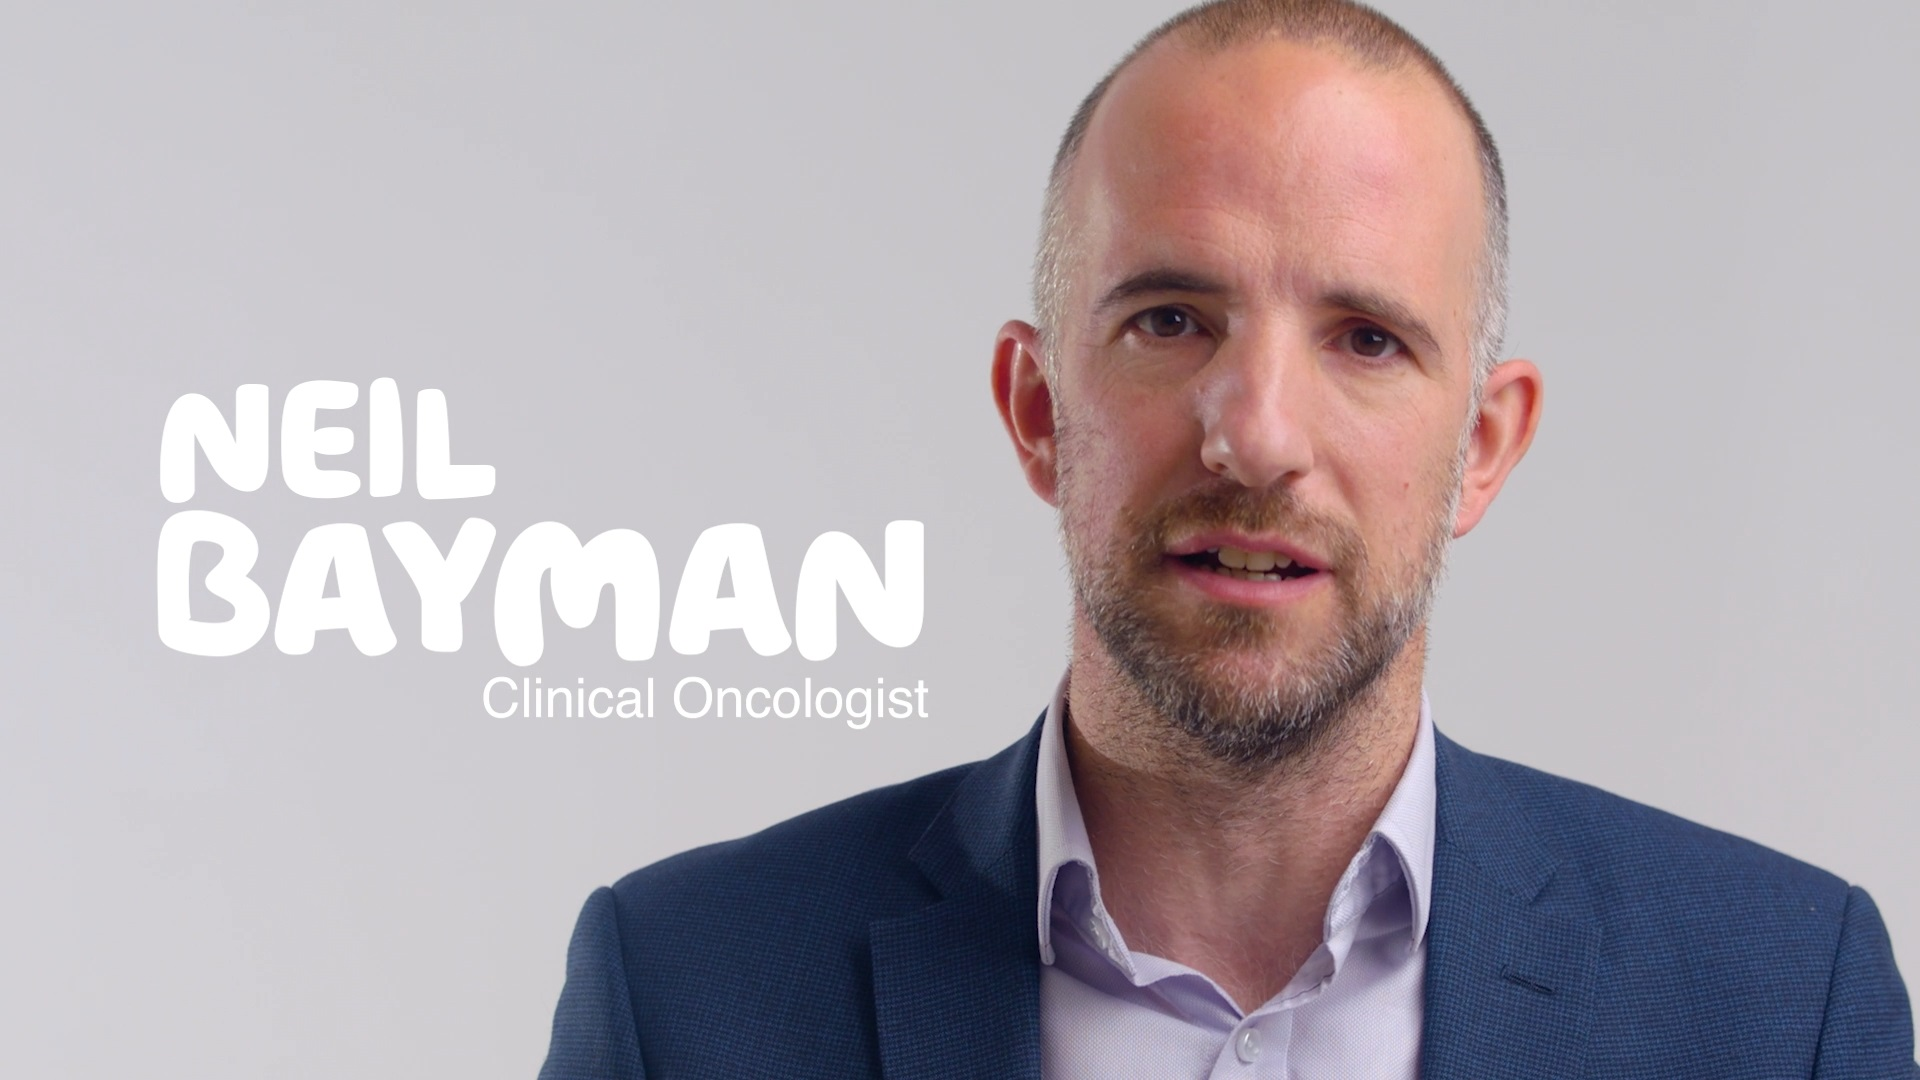 Neil Bayman, a clinical oncologist, talks you through what lung cancer is, the main types, risk factors, stages and common treatments available to you. [03:47]